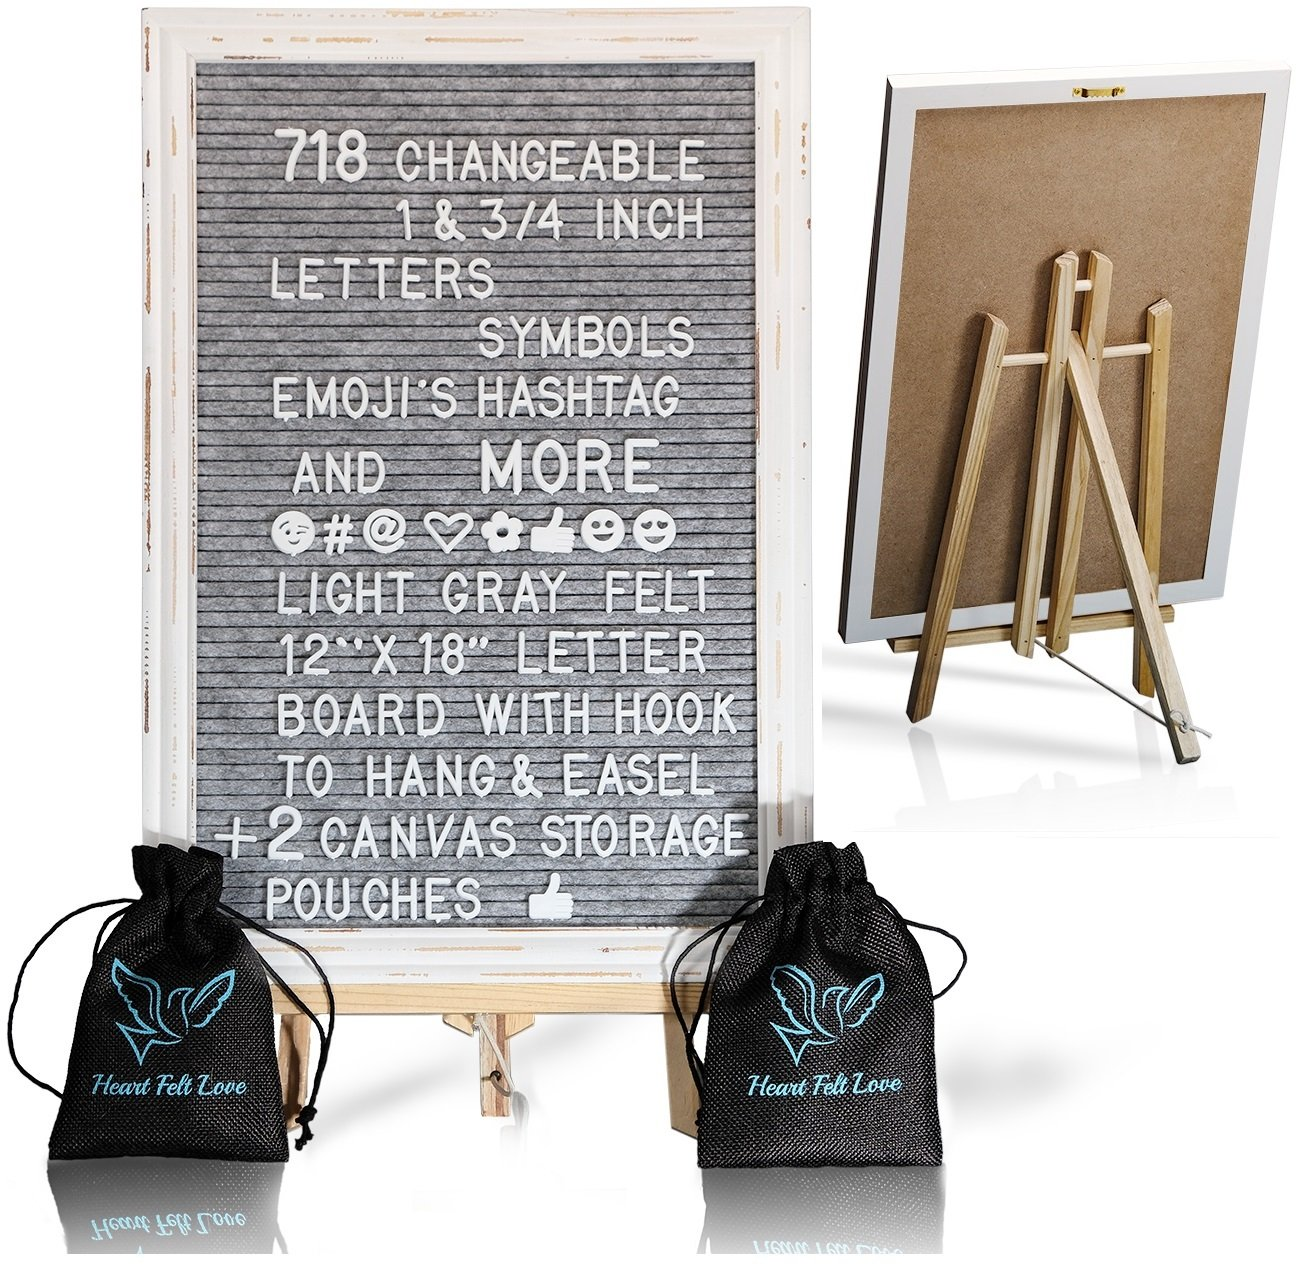 Gray Felt Letter Board With Easel Stand 12 x 18 | 718 Changeable Characters Including 1 inch and ¾ Letters, Symbols, Emojis Hashtag + More | Hook To Hang | 2 Bags (Gray W/ Antique Frame)